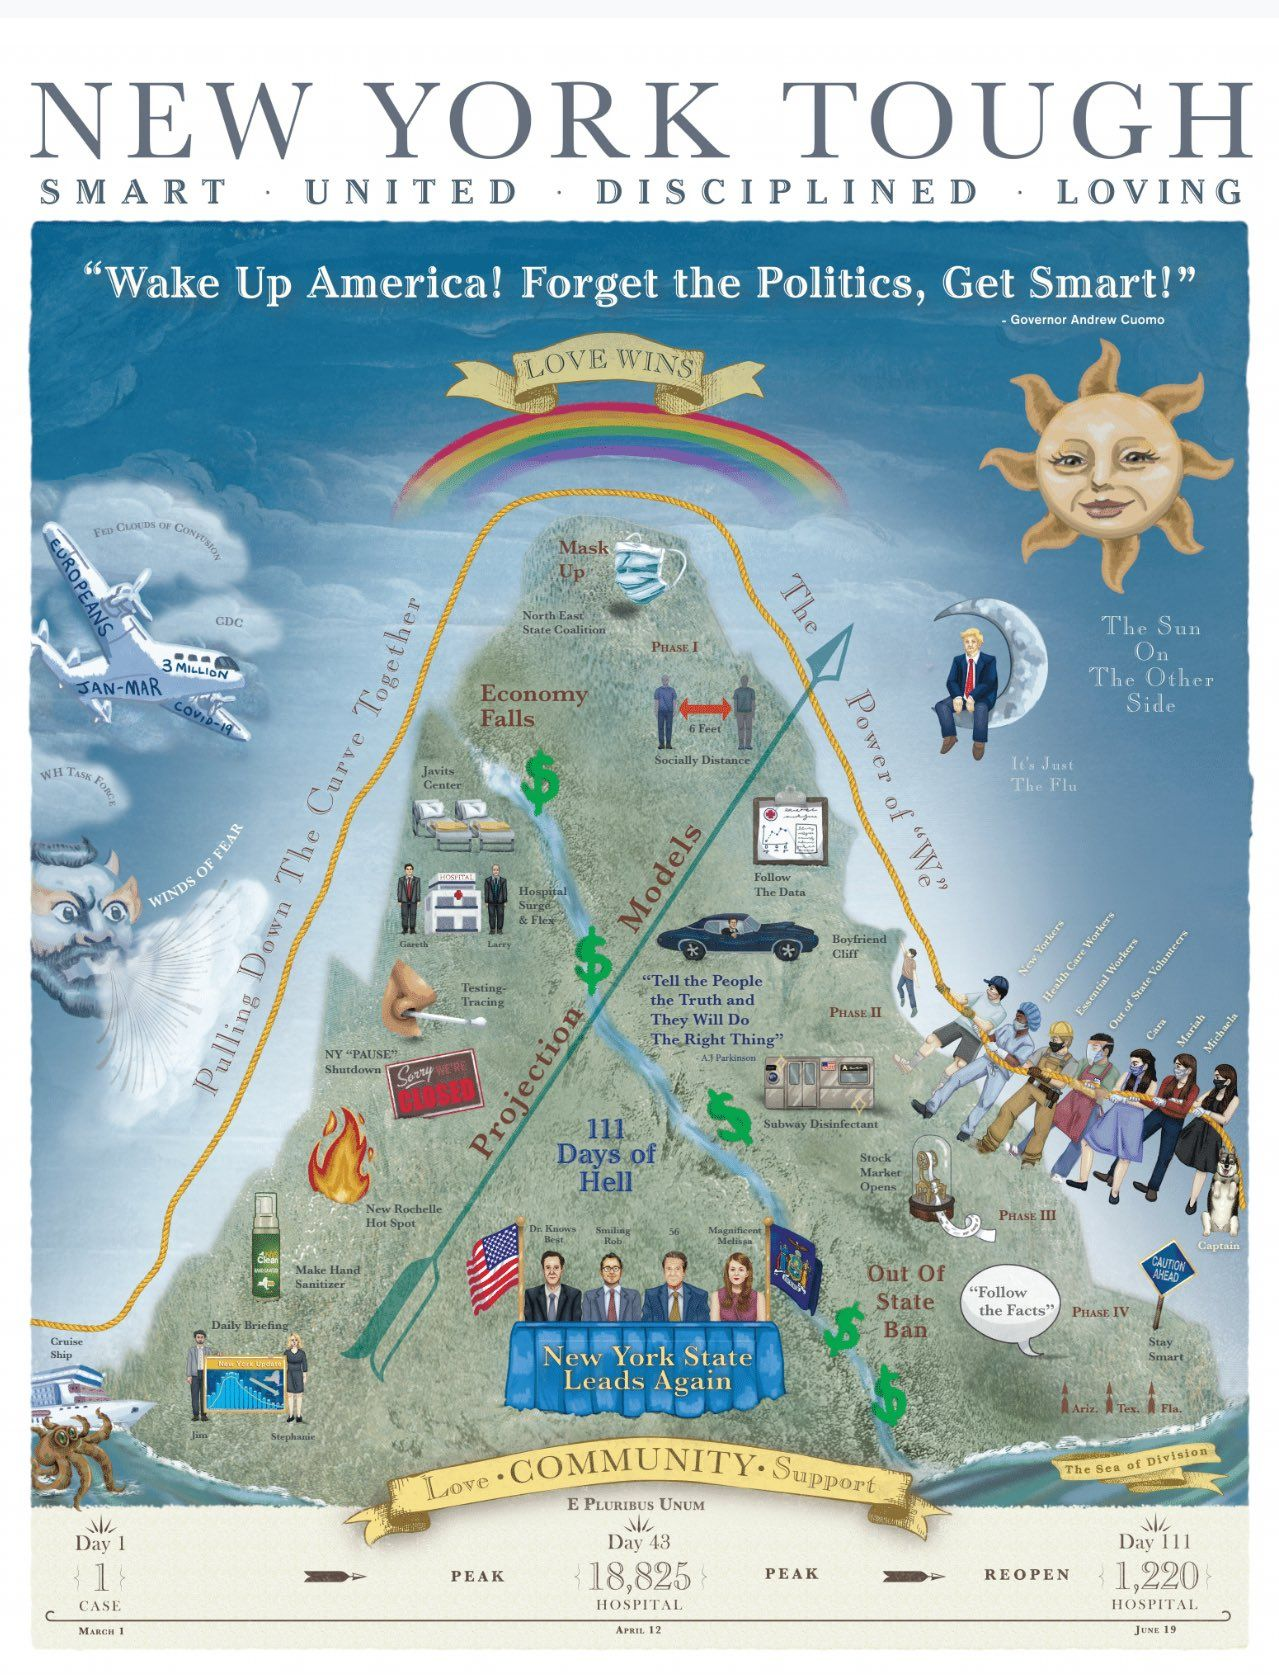 Nick Reisman On Twitter In 2020 Political Artwork Poster Love Posters